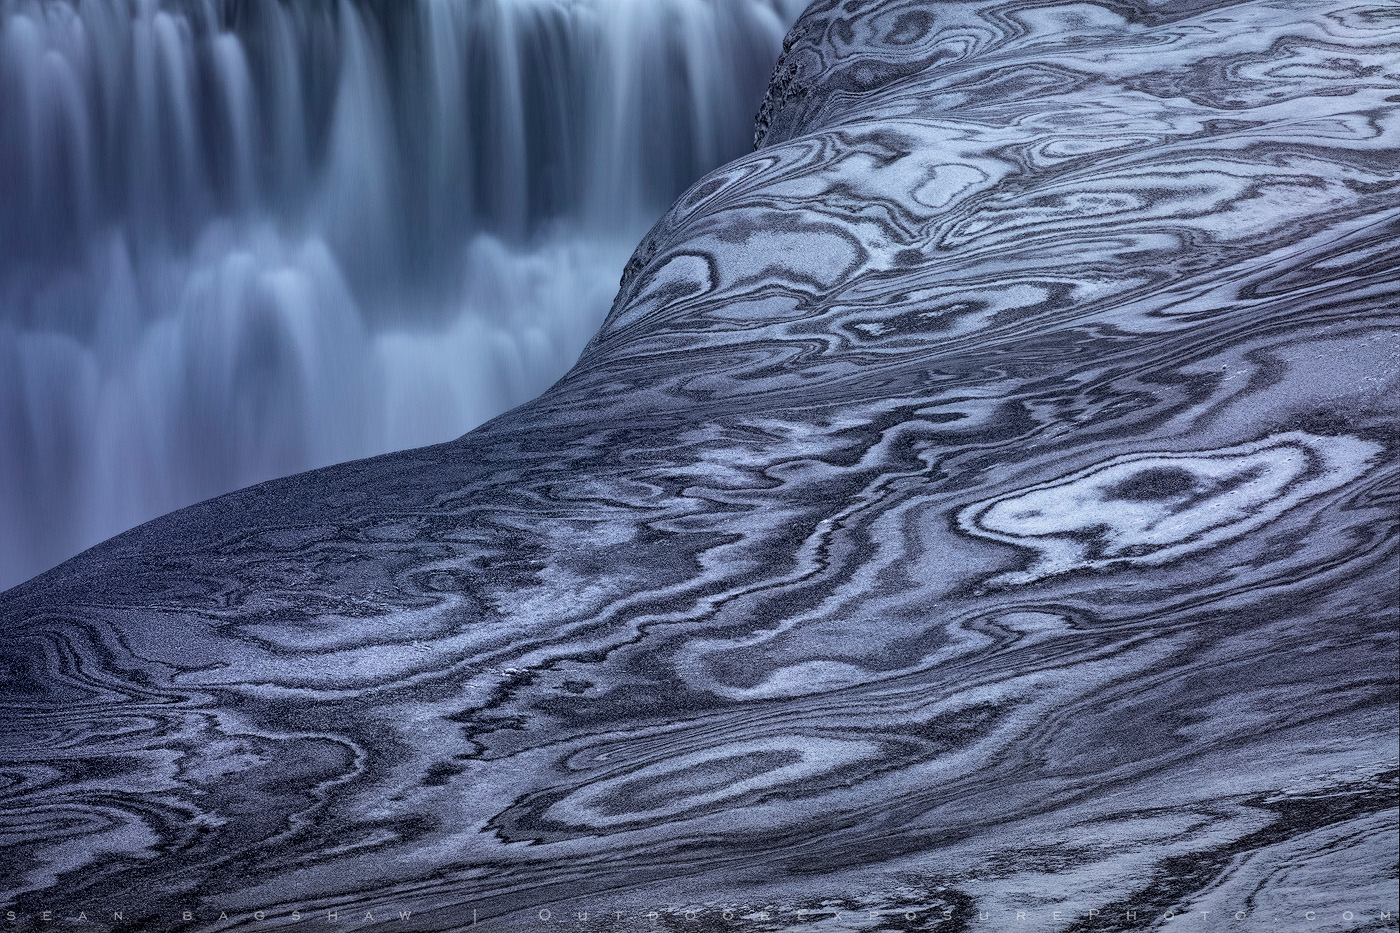 Psychedelic Dettifoss, Iceland